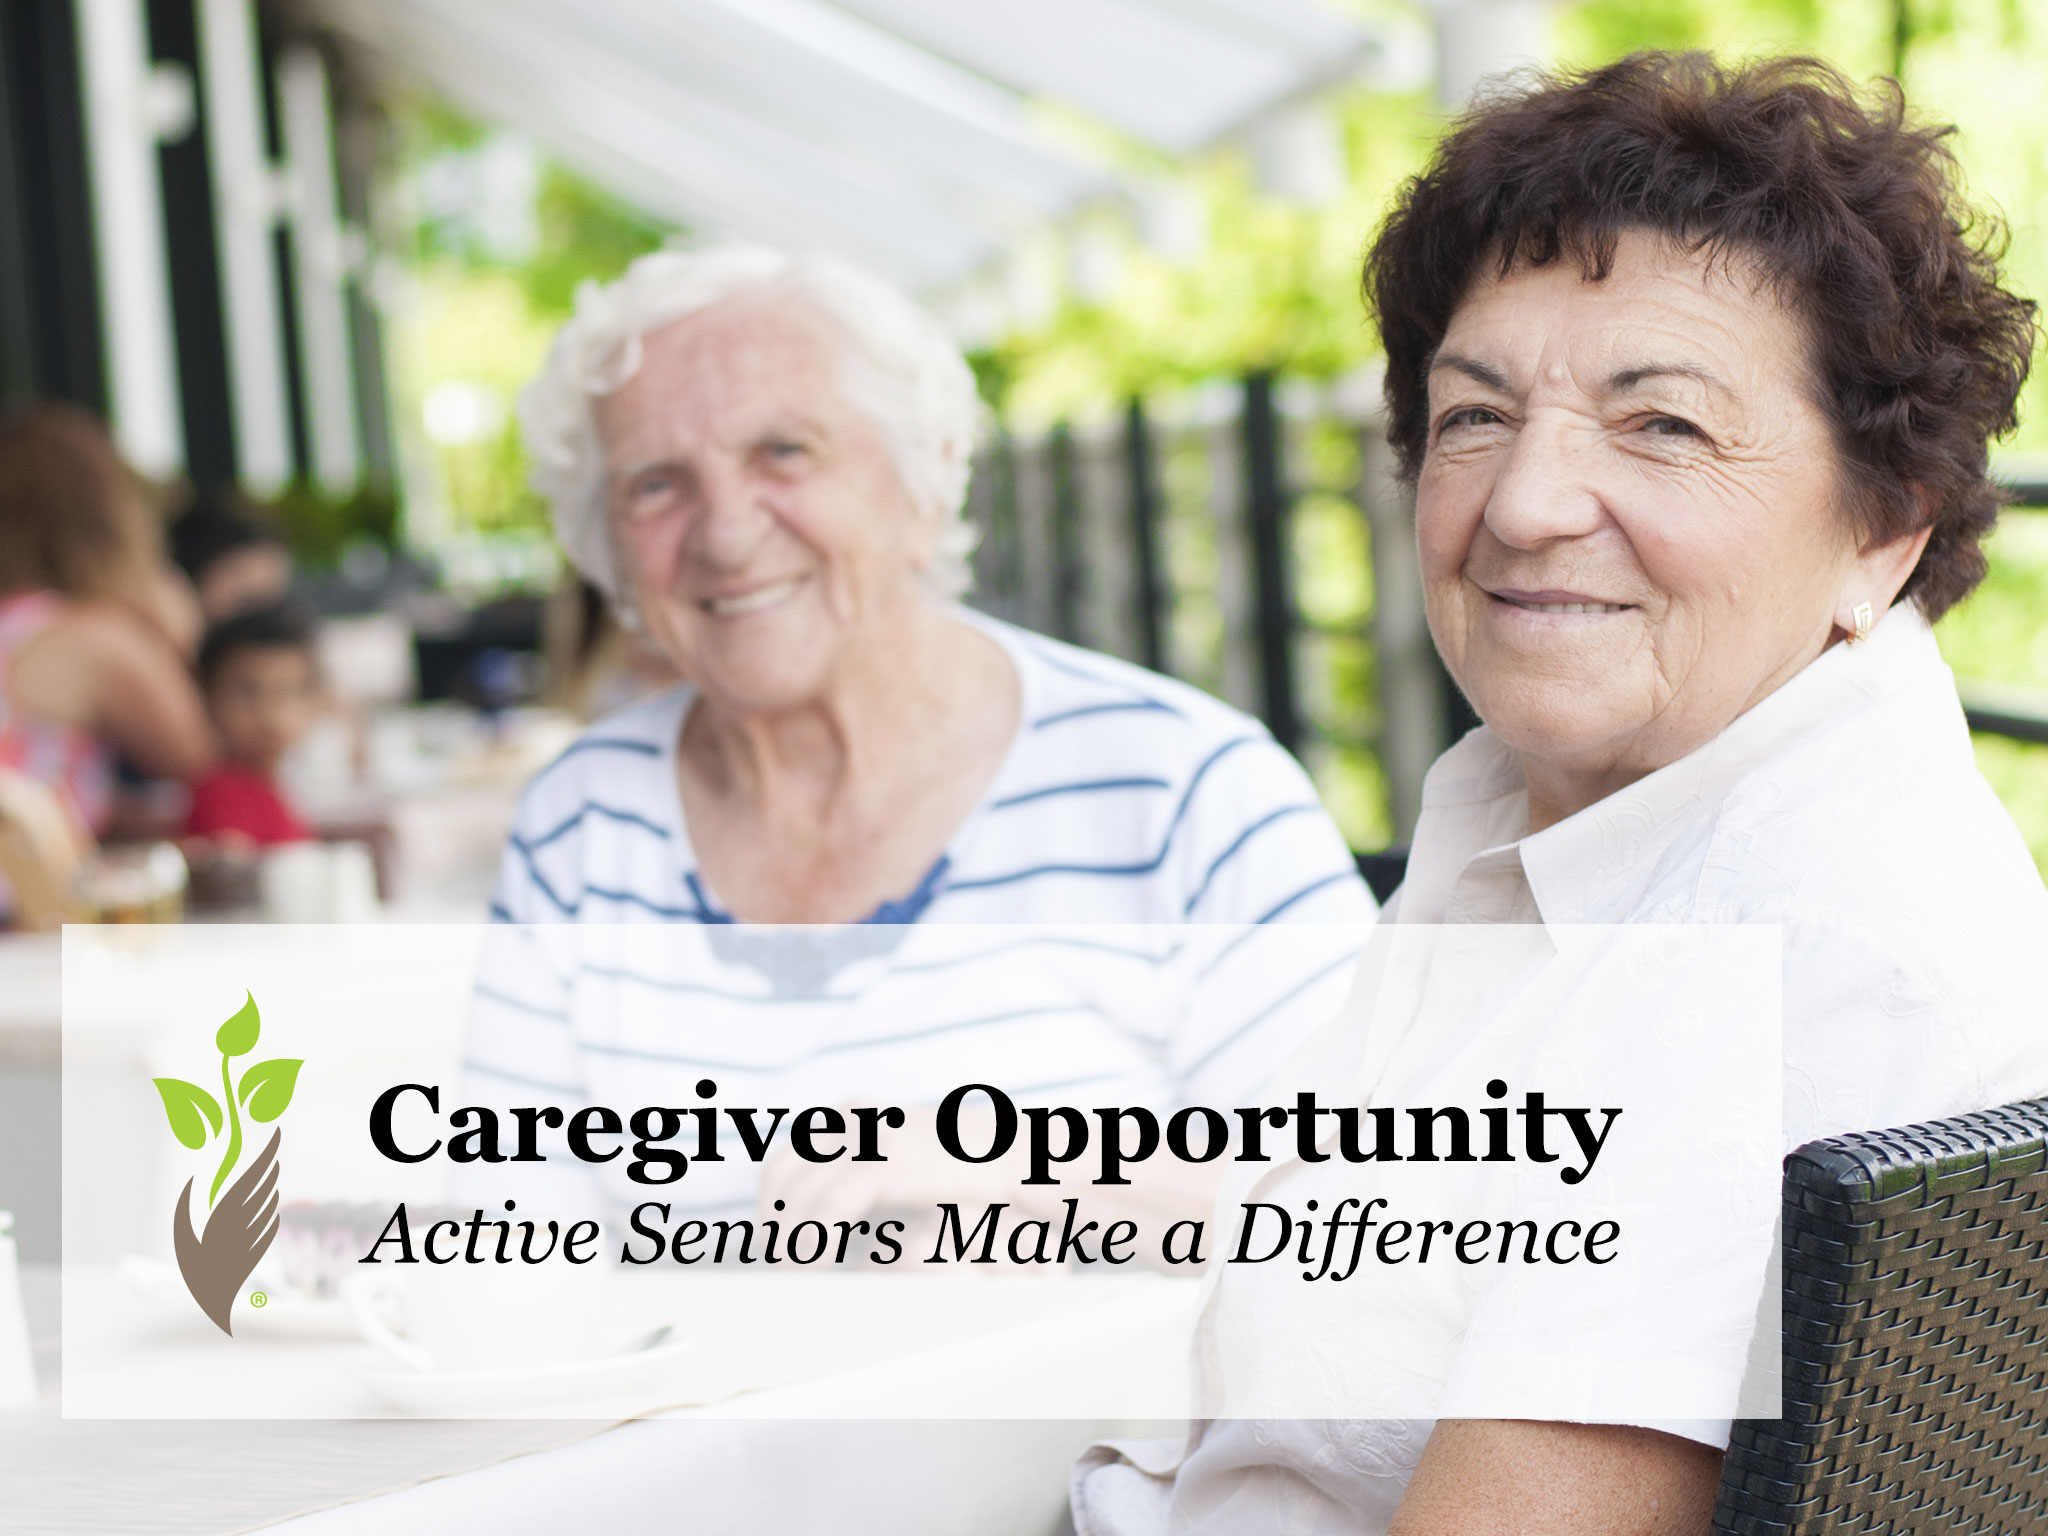 Caregiver Opportunity: Active Seniors Make a Difference